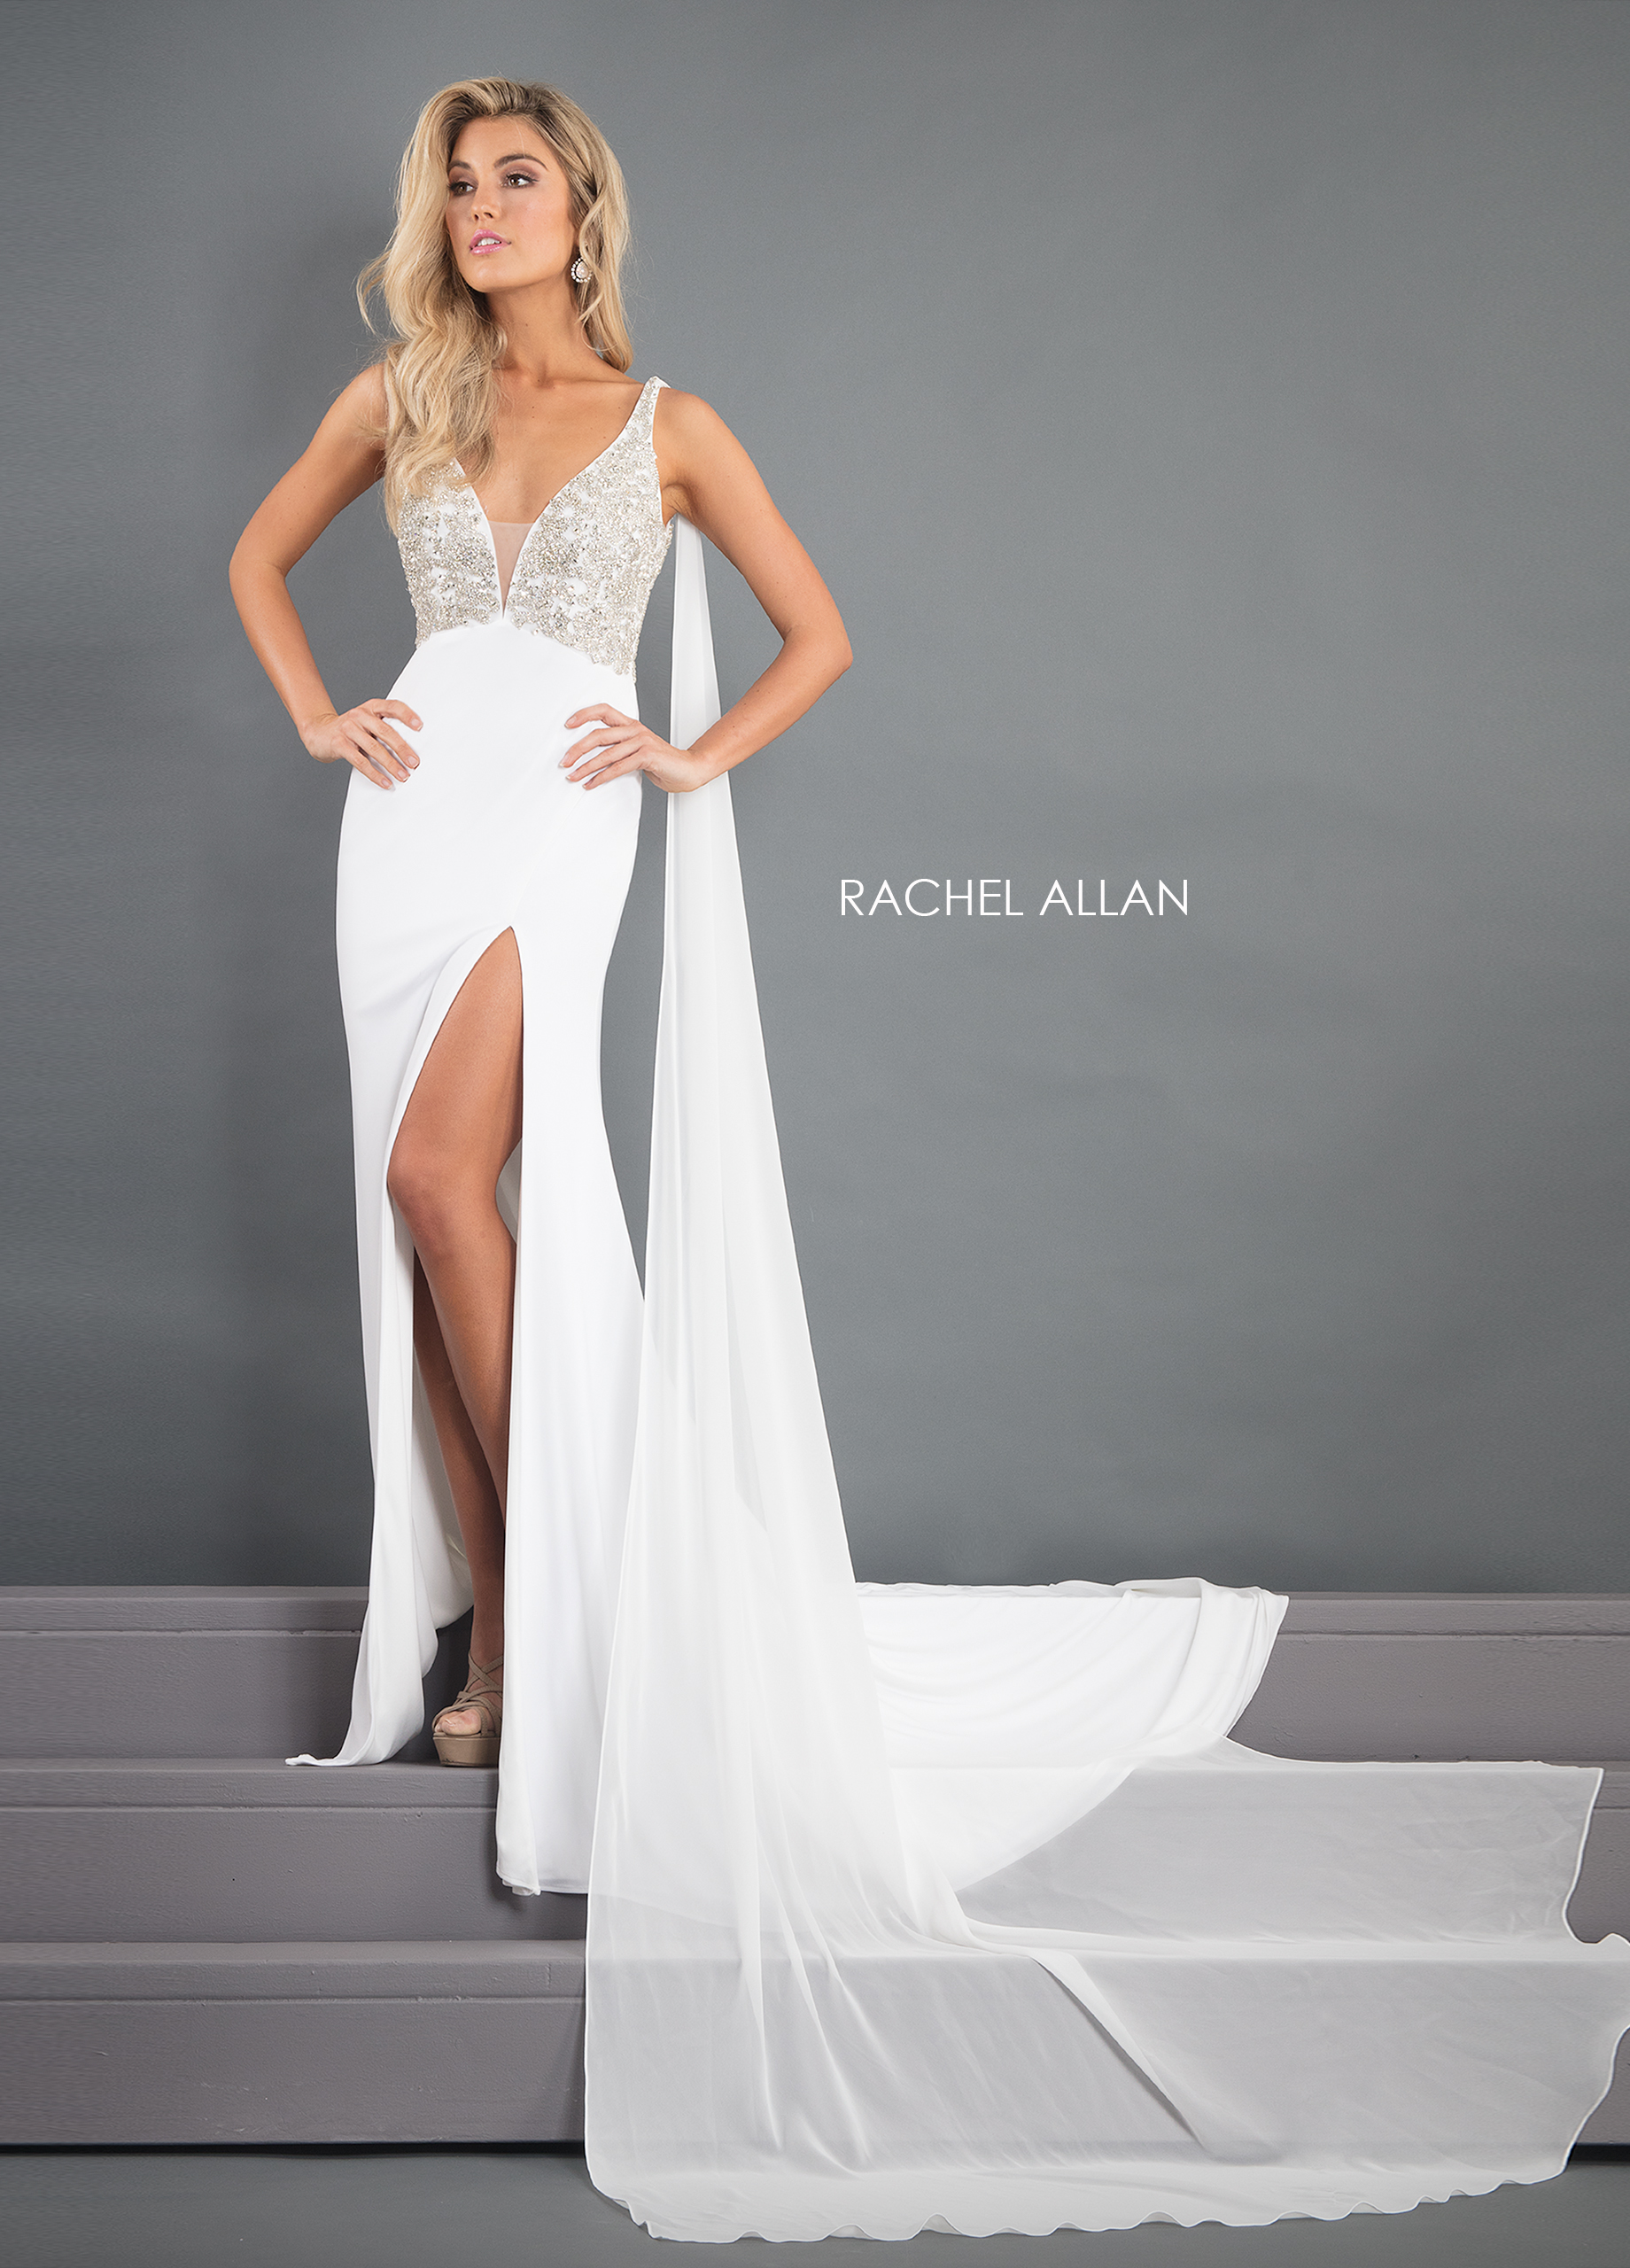 V-Neck Fitted Long Pageant Dresses in White Color